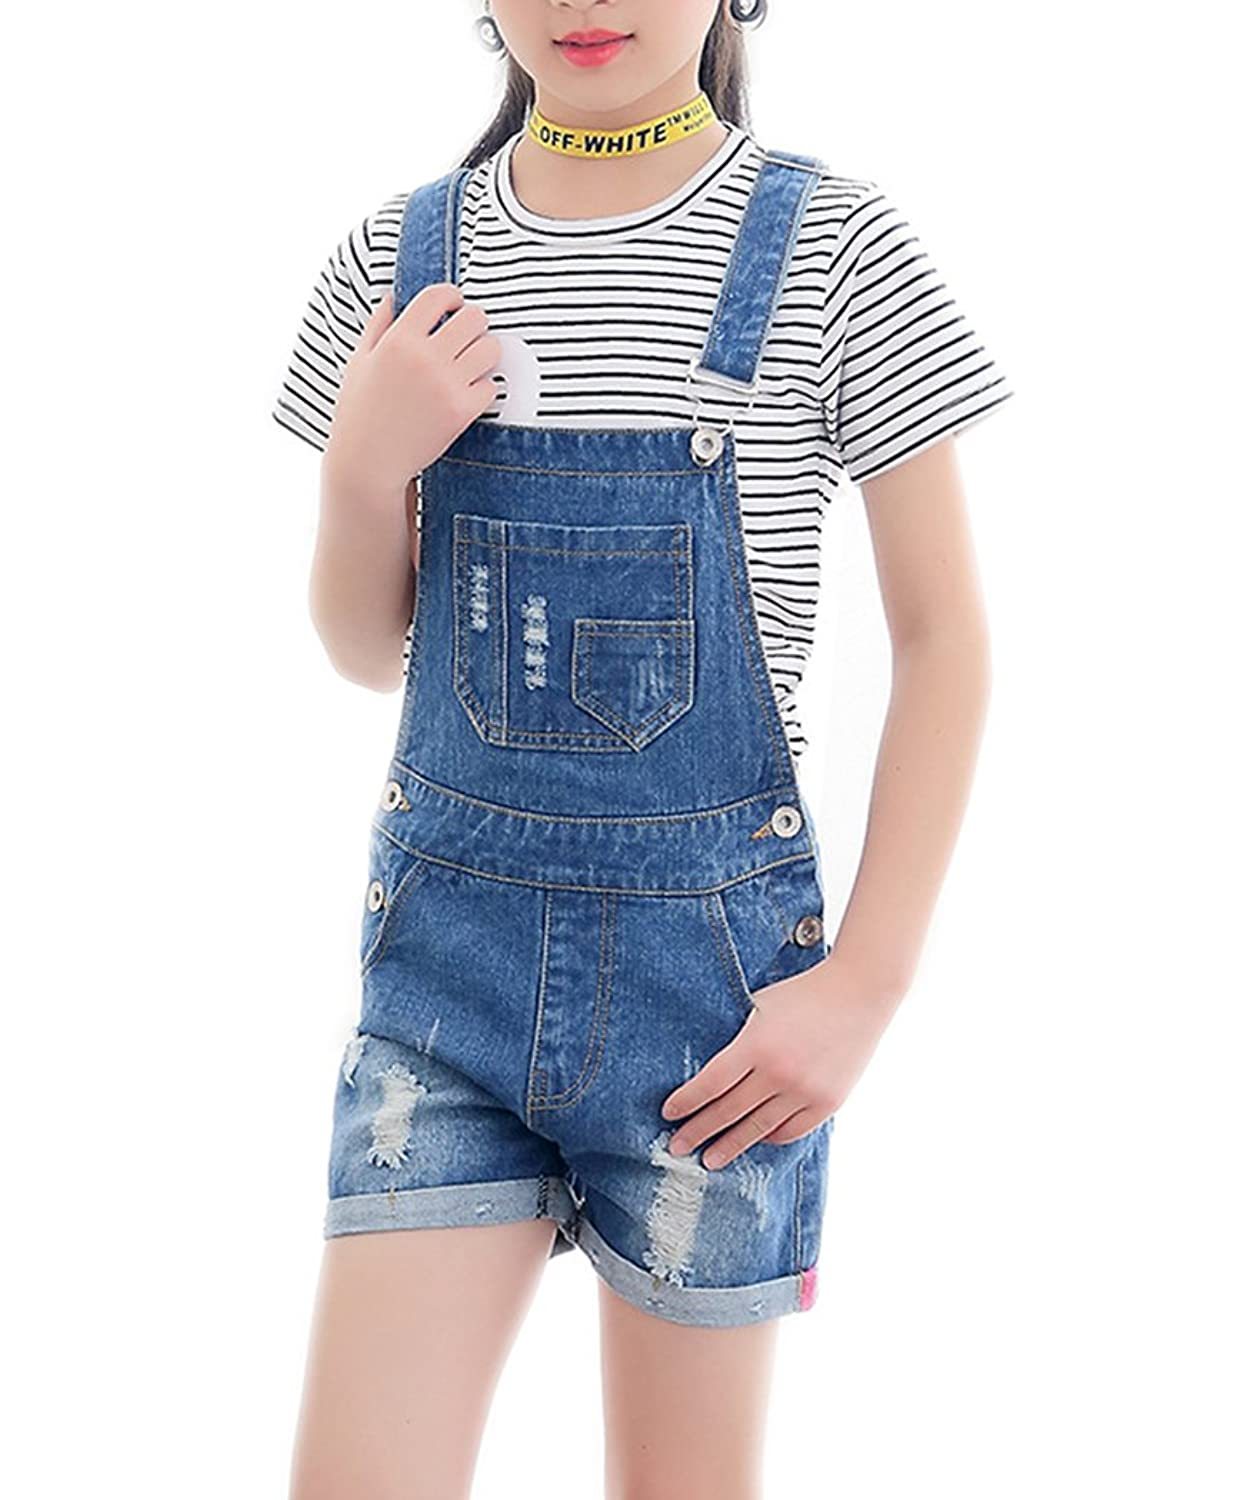 fa34c46120bf Luodemiss Big Girl s Denim Jumpsuit Boyfriend Jeans Cool Fashion Denim  Romper Shortalls